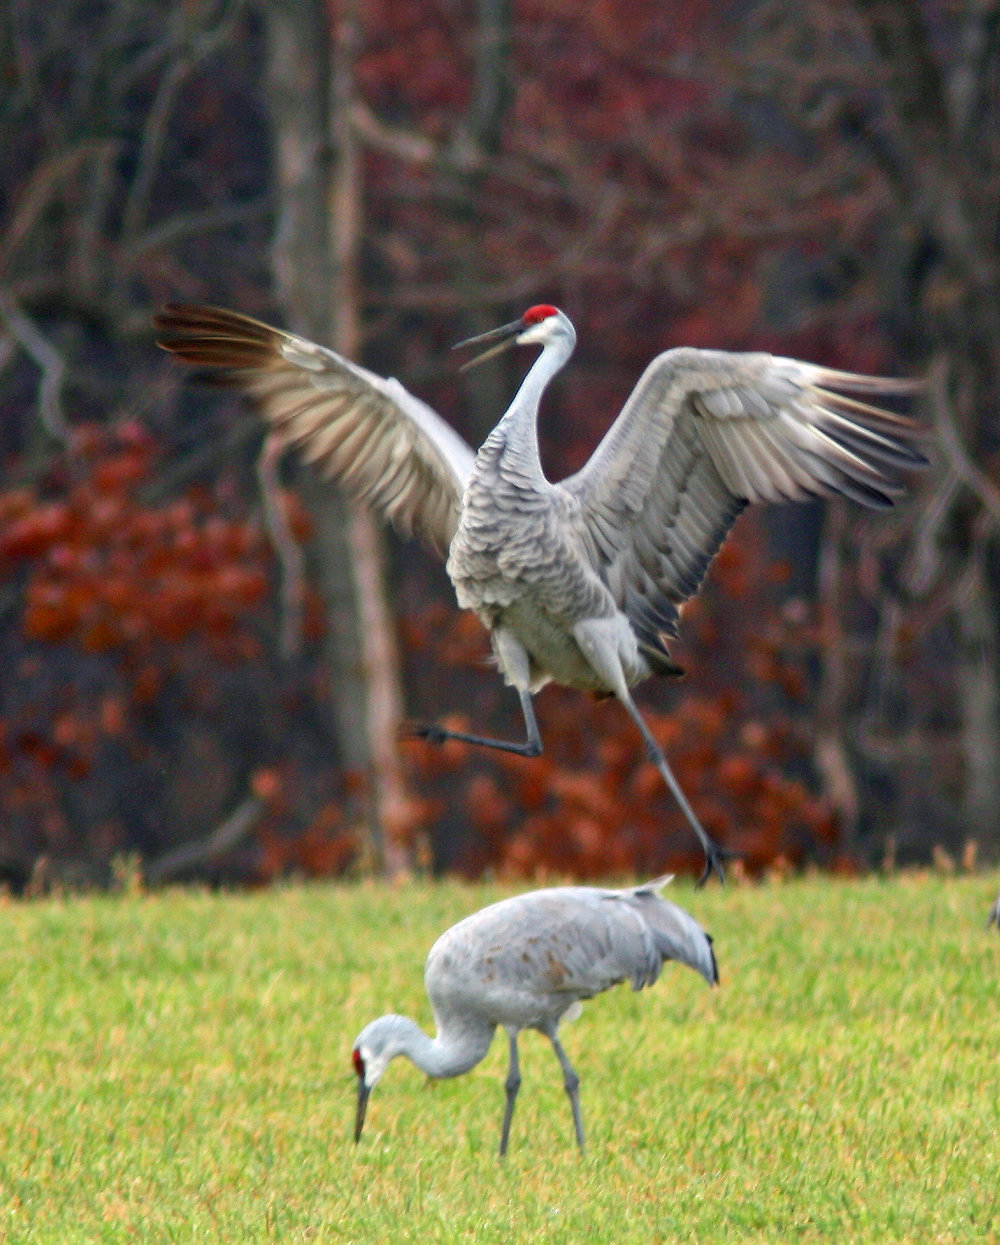 Sandhill crane recovery - Sandhill cranes are synonymous with the Waterloo Recreation Area. A familiar sight and sound in the area, it's hard to imagine these majestic birds once nearly disappeared from the landscape. According to the Michigan DNR, only nine cranes were found in the nearby Phyllis Haehnle Memorial Michigan Audubon Society Sanctuary in 1949. Today they number in the thousands, and we can largely attribute their recovery to a piece of legislation 100 years old: the Migratory Bird Treaty Act.